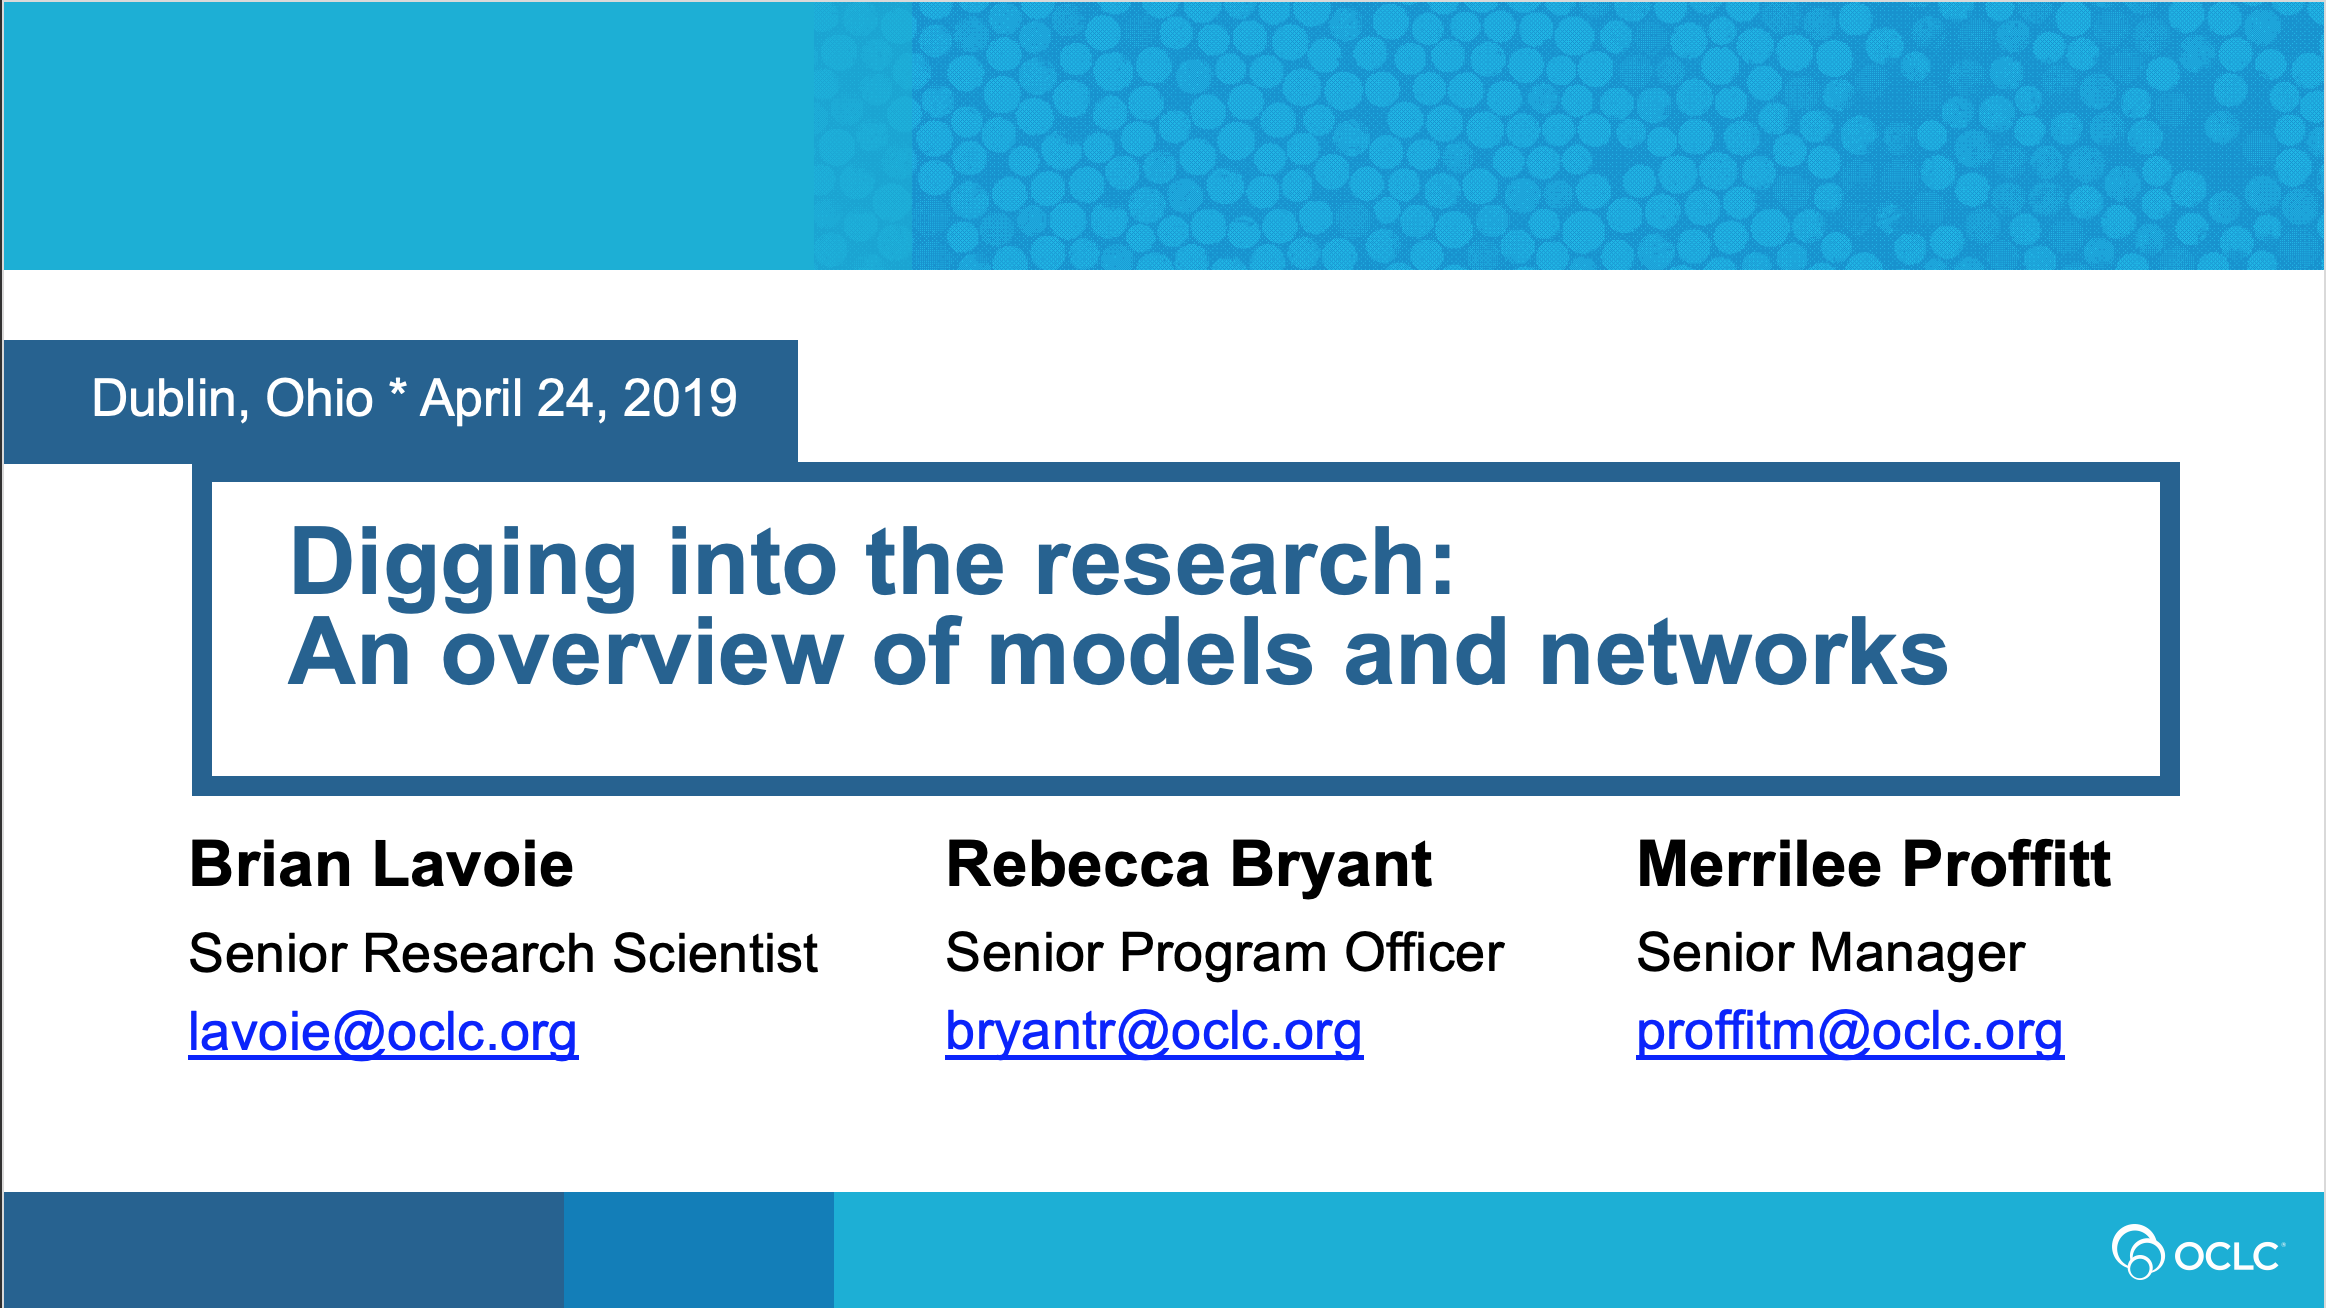 Digging into the Research: An Overview of Models and Networks